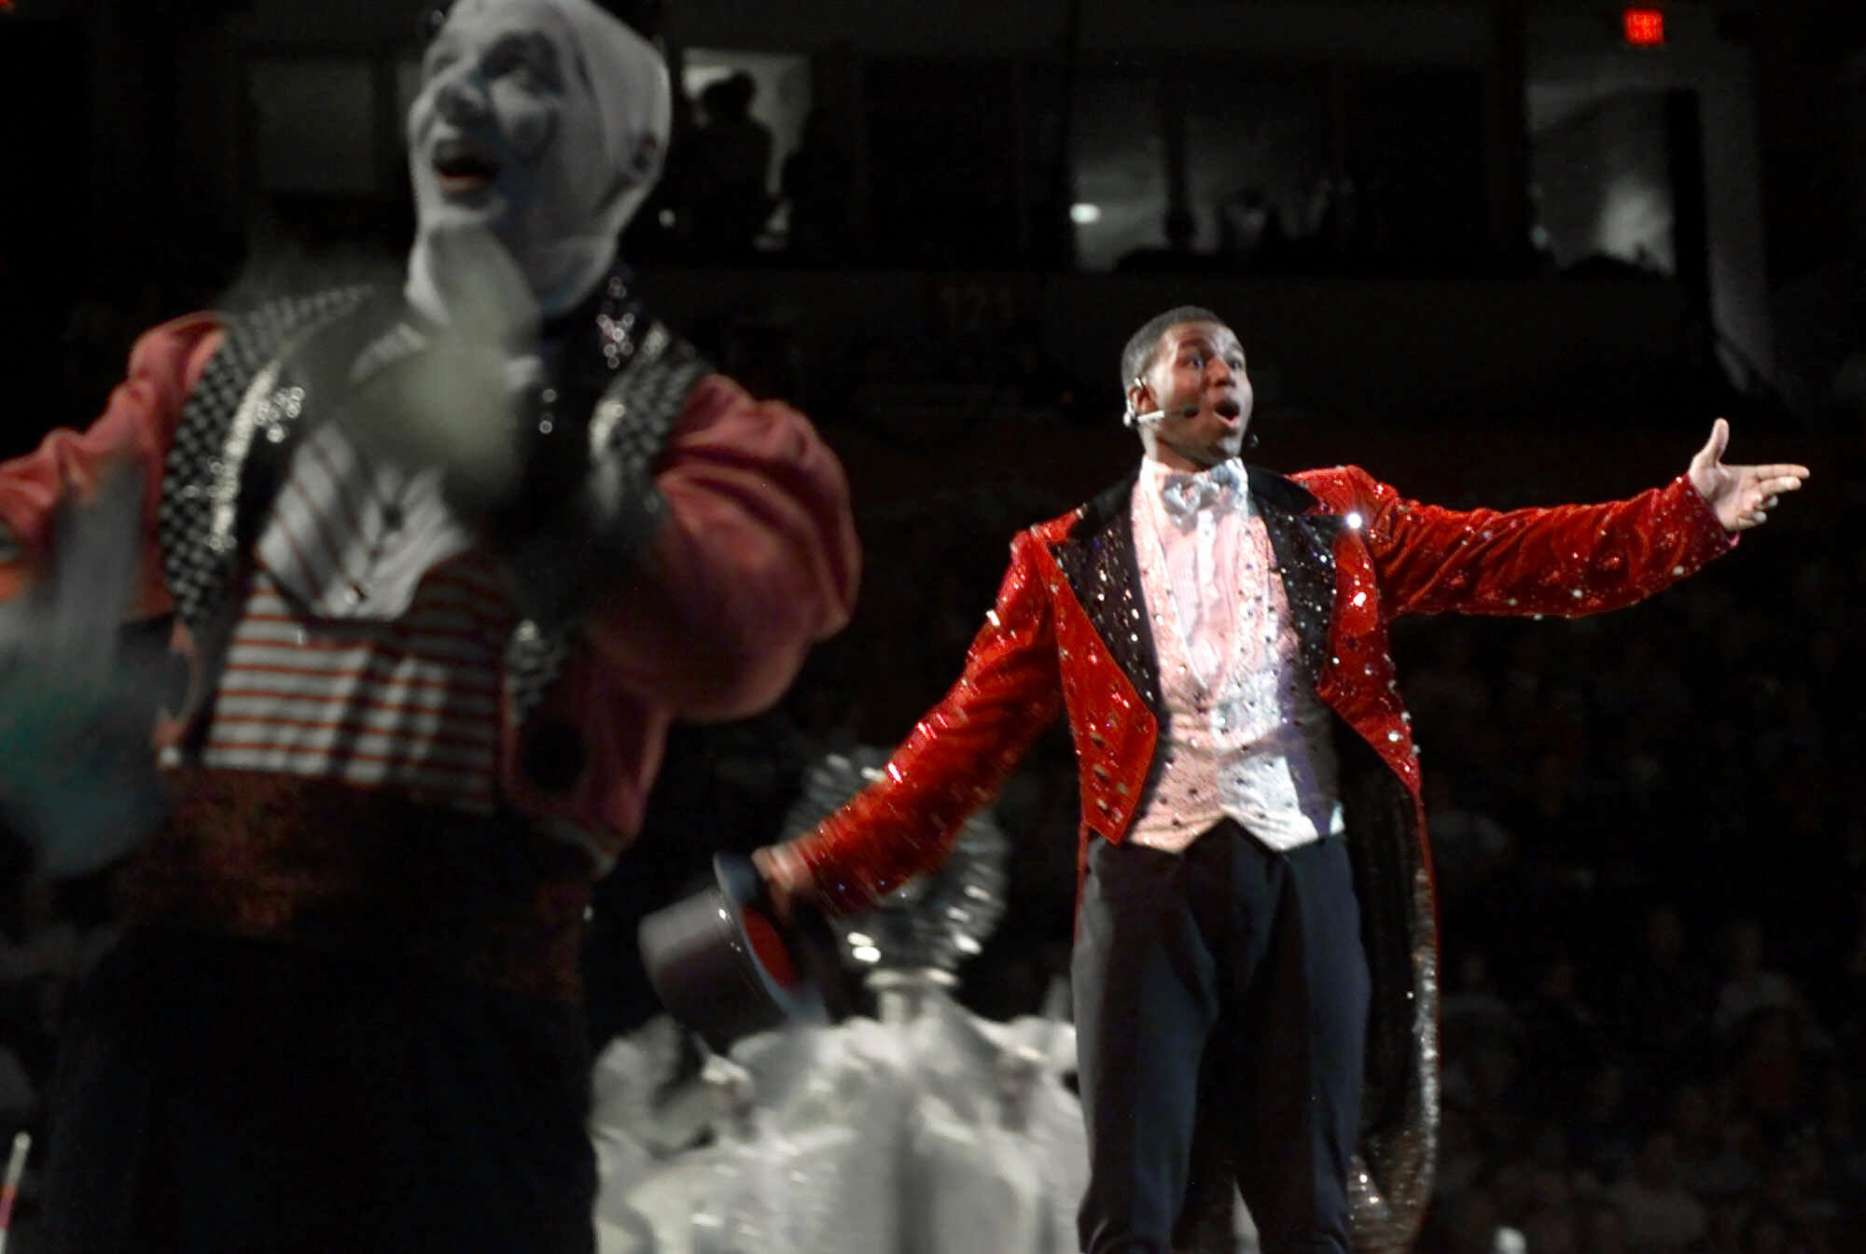 Ringmaster Johnathan Lee Iverson, right, performs during the opening of the Ringling Bros. and Barnum & Bailey circus Wednesday, June 14, 2000, in North Little Rock, Ark. Iverson, 24, is the youngest ringmaster ever for the circus. (AP Photo/Danny Johnston)